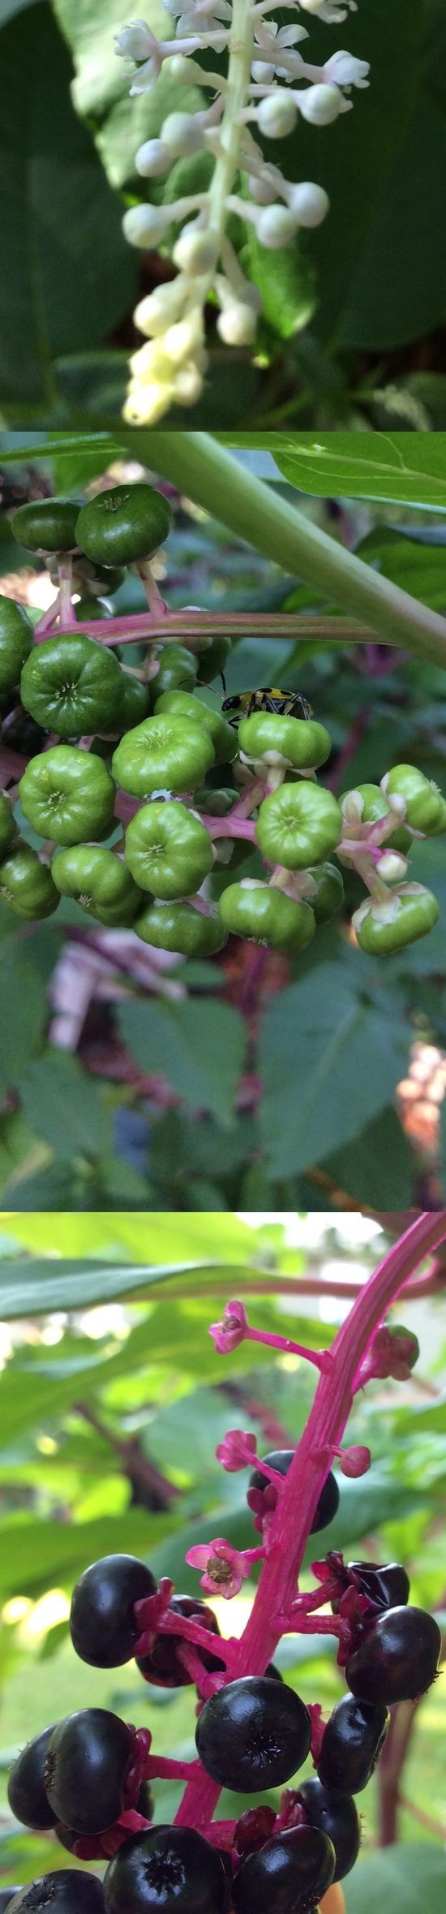 The phases of the Pokeweed plant. It starts with the delicate white flowers, transitions into the green pods and then to the rich, dark berries. Native Americans used to use this North American plant for inks.